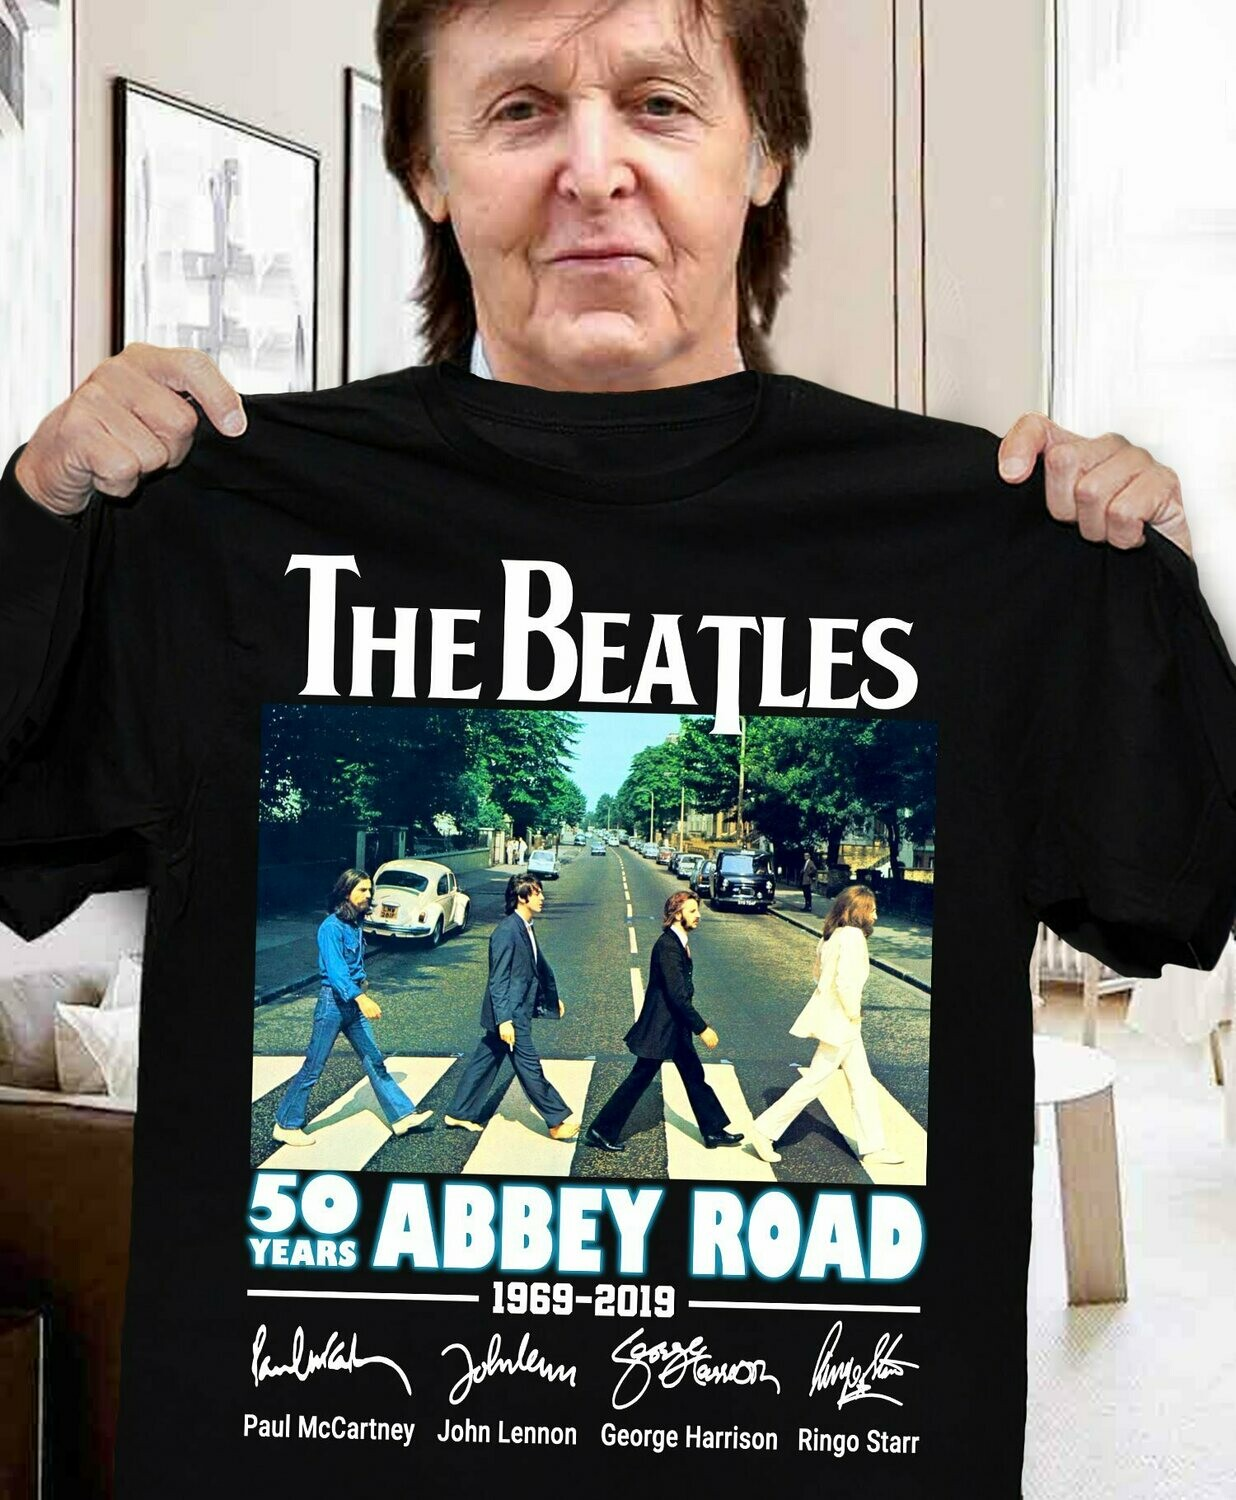 THE BEATLES tshirt abbey road Retro rock music T shirt, THE BEATLES Stage Photo Logo T-Shirt, Classic Rock Band Legend, Beetles Retro Vintage Tribute to the Old Masters Abbey Road, pedestrian crossing